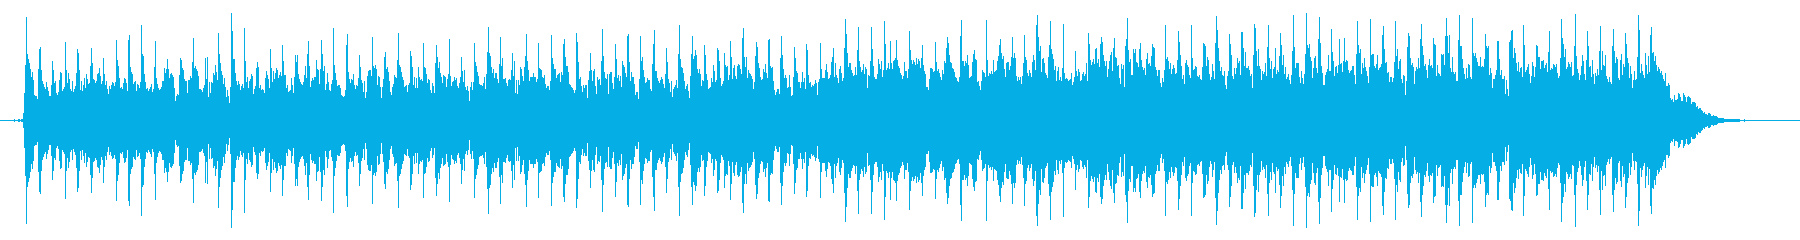 A live performed ...'s reproduced waveform